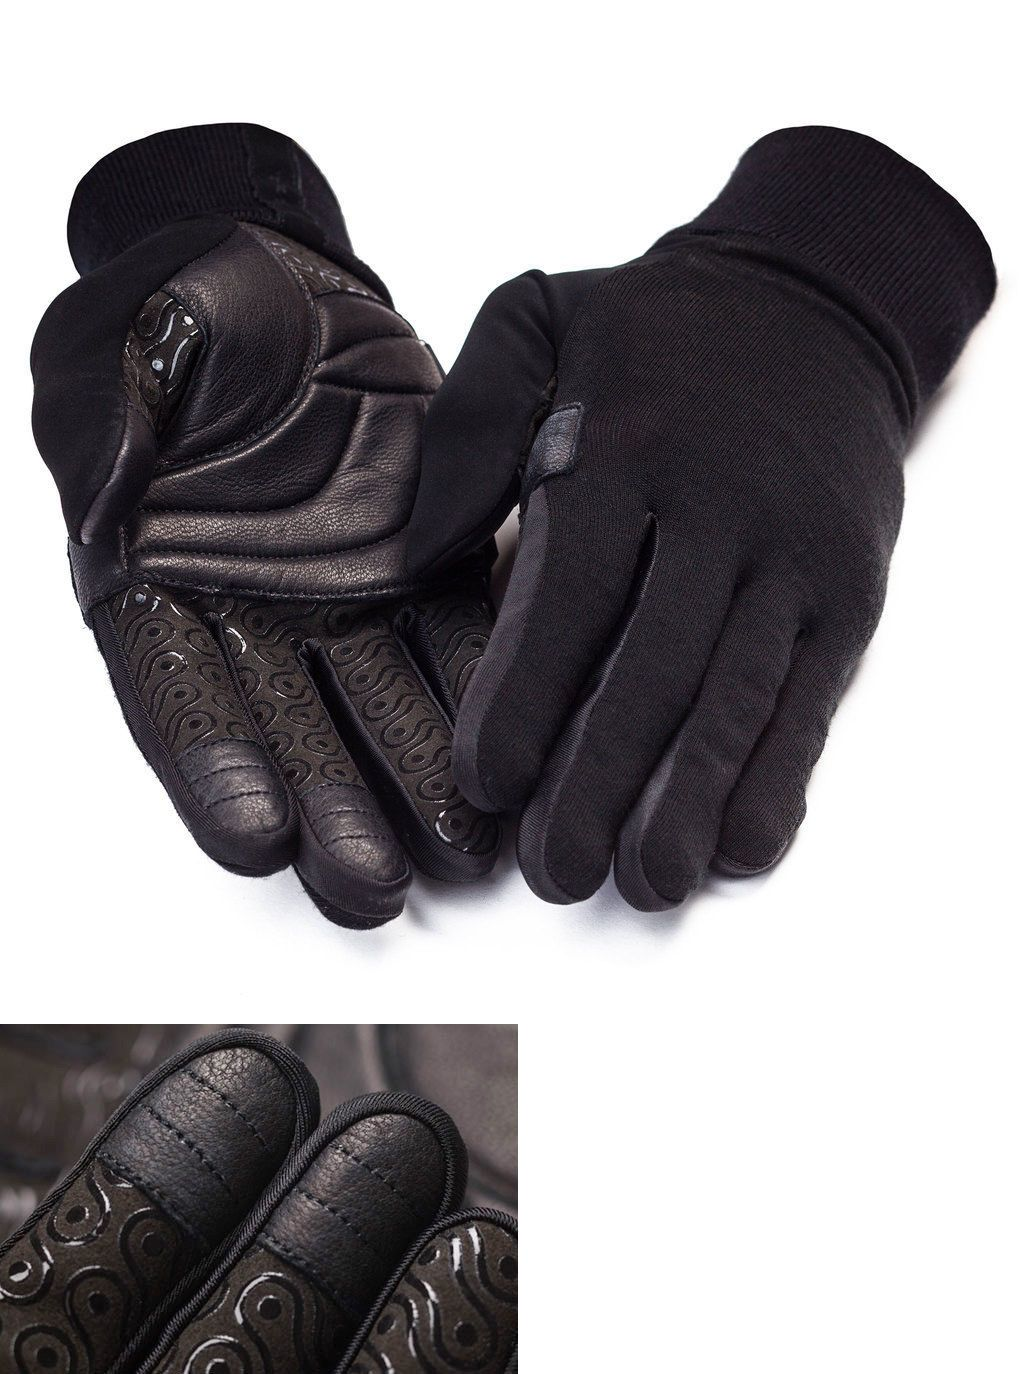 Gloves nwt rapha merino gloves with leather palm black size